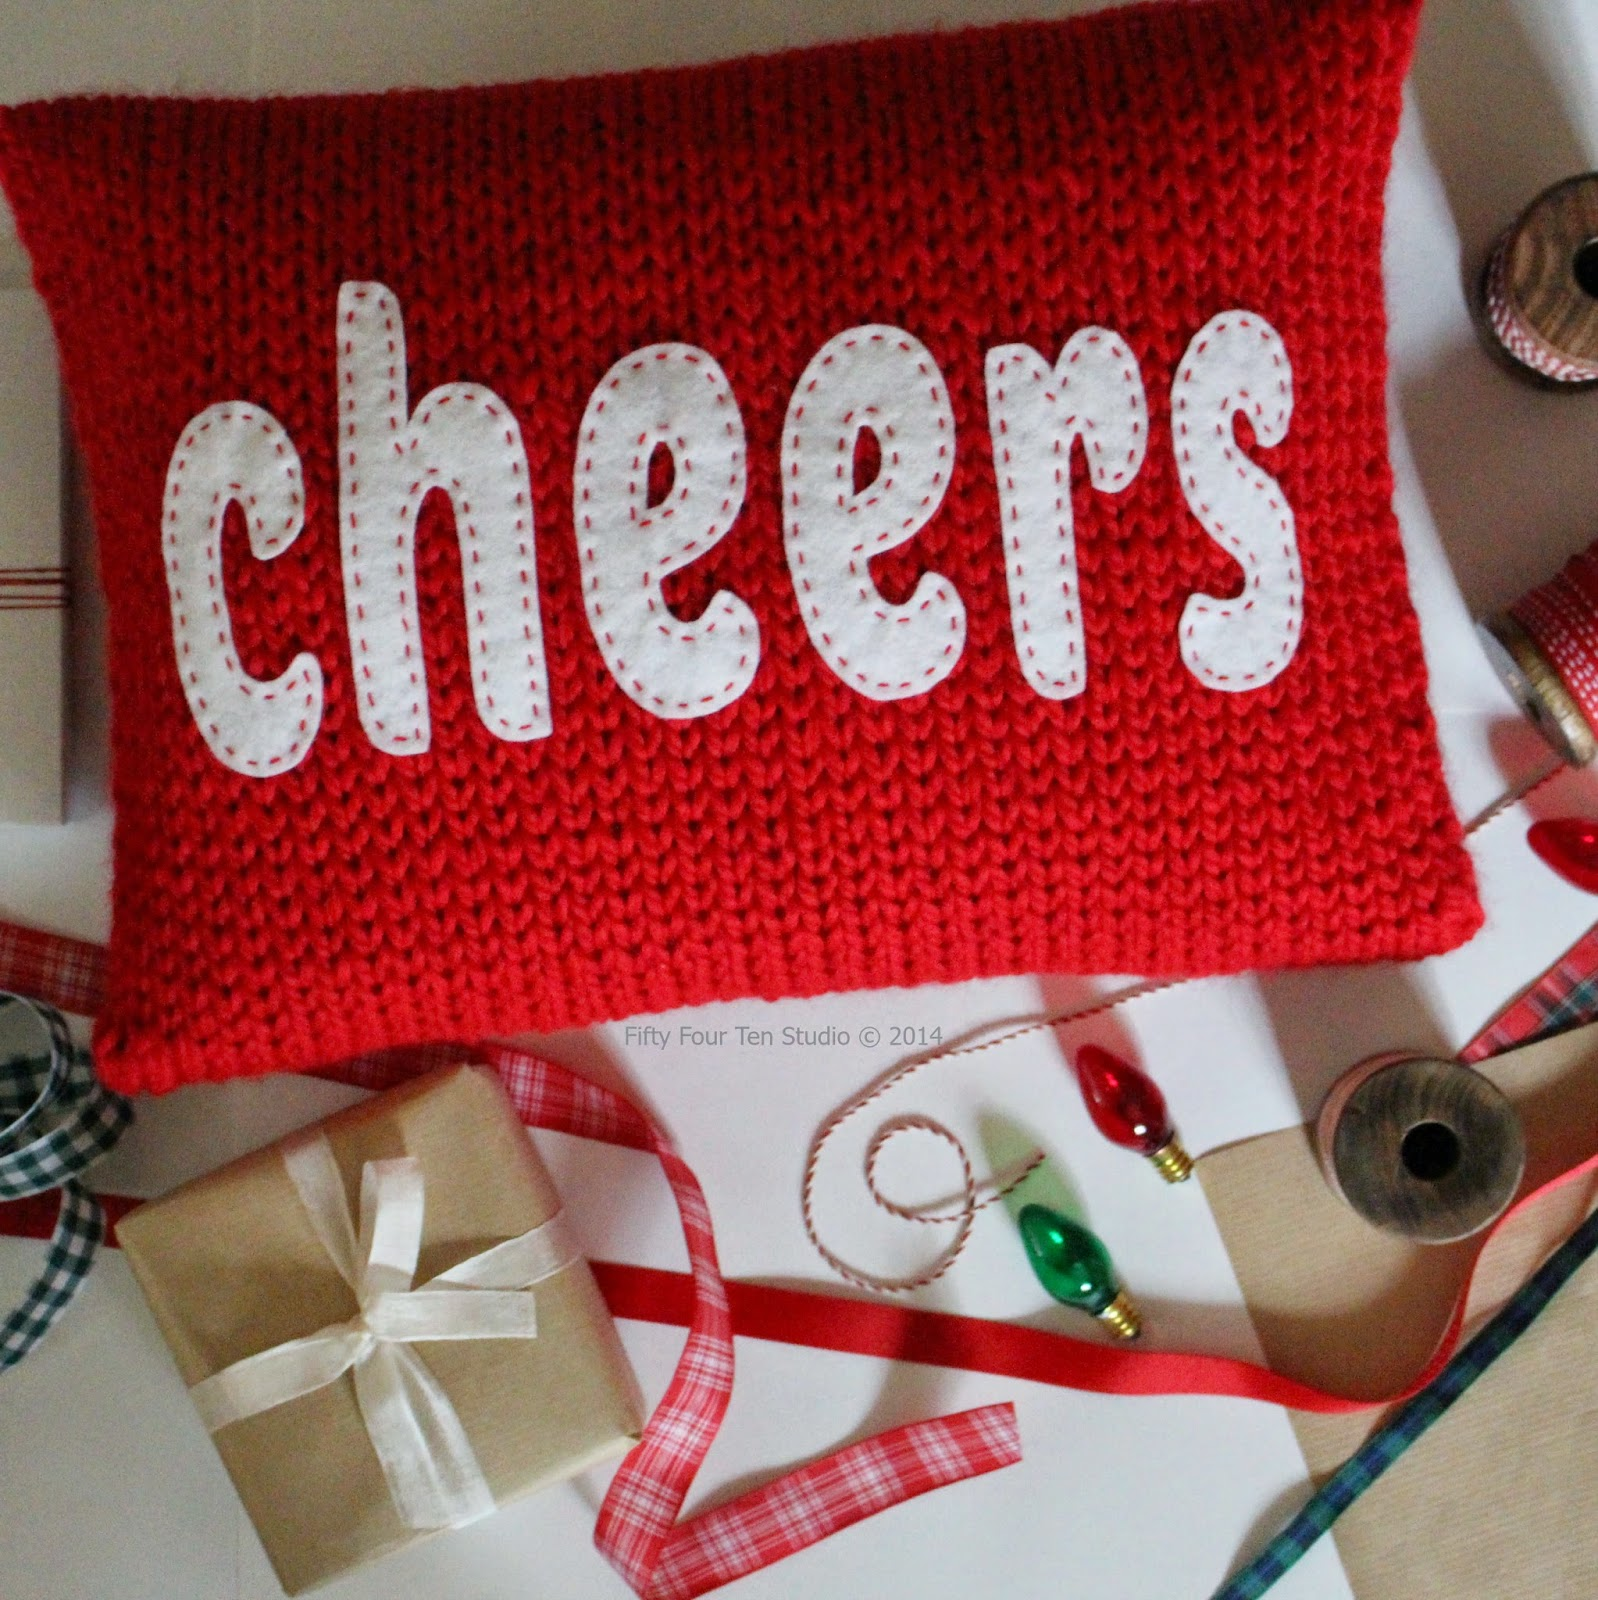 Fifty Four Ten Studio: Merry & Cheers Christmas Pillows Knitting Pattern